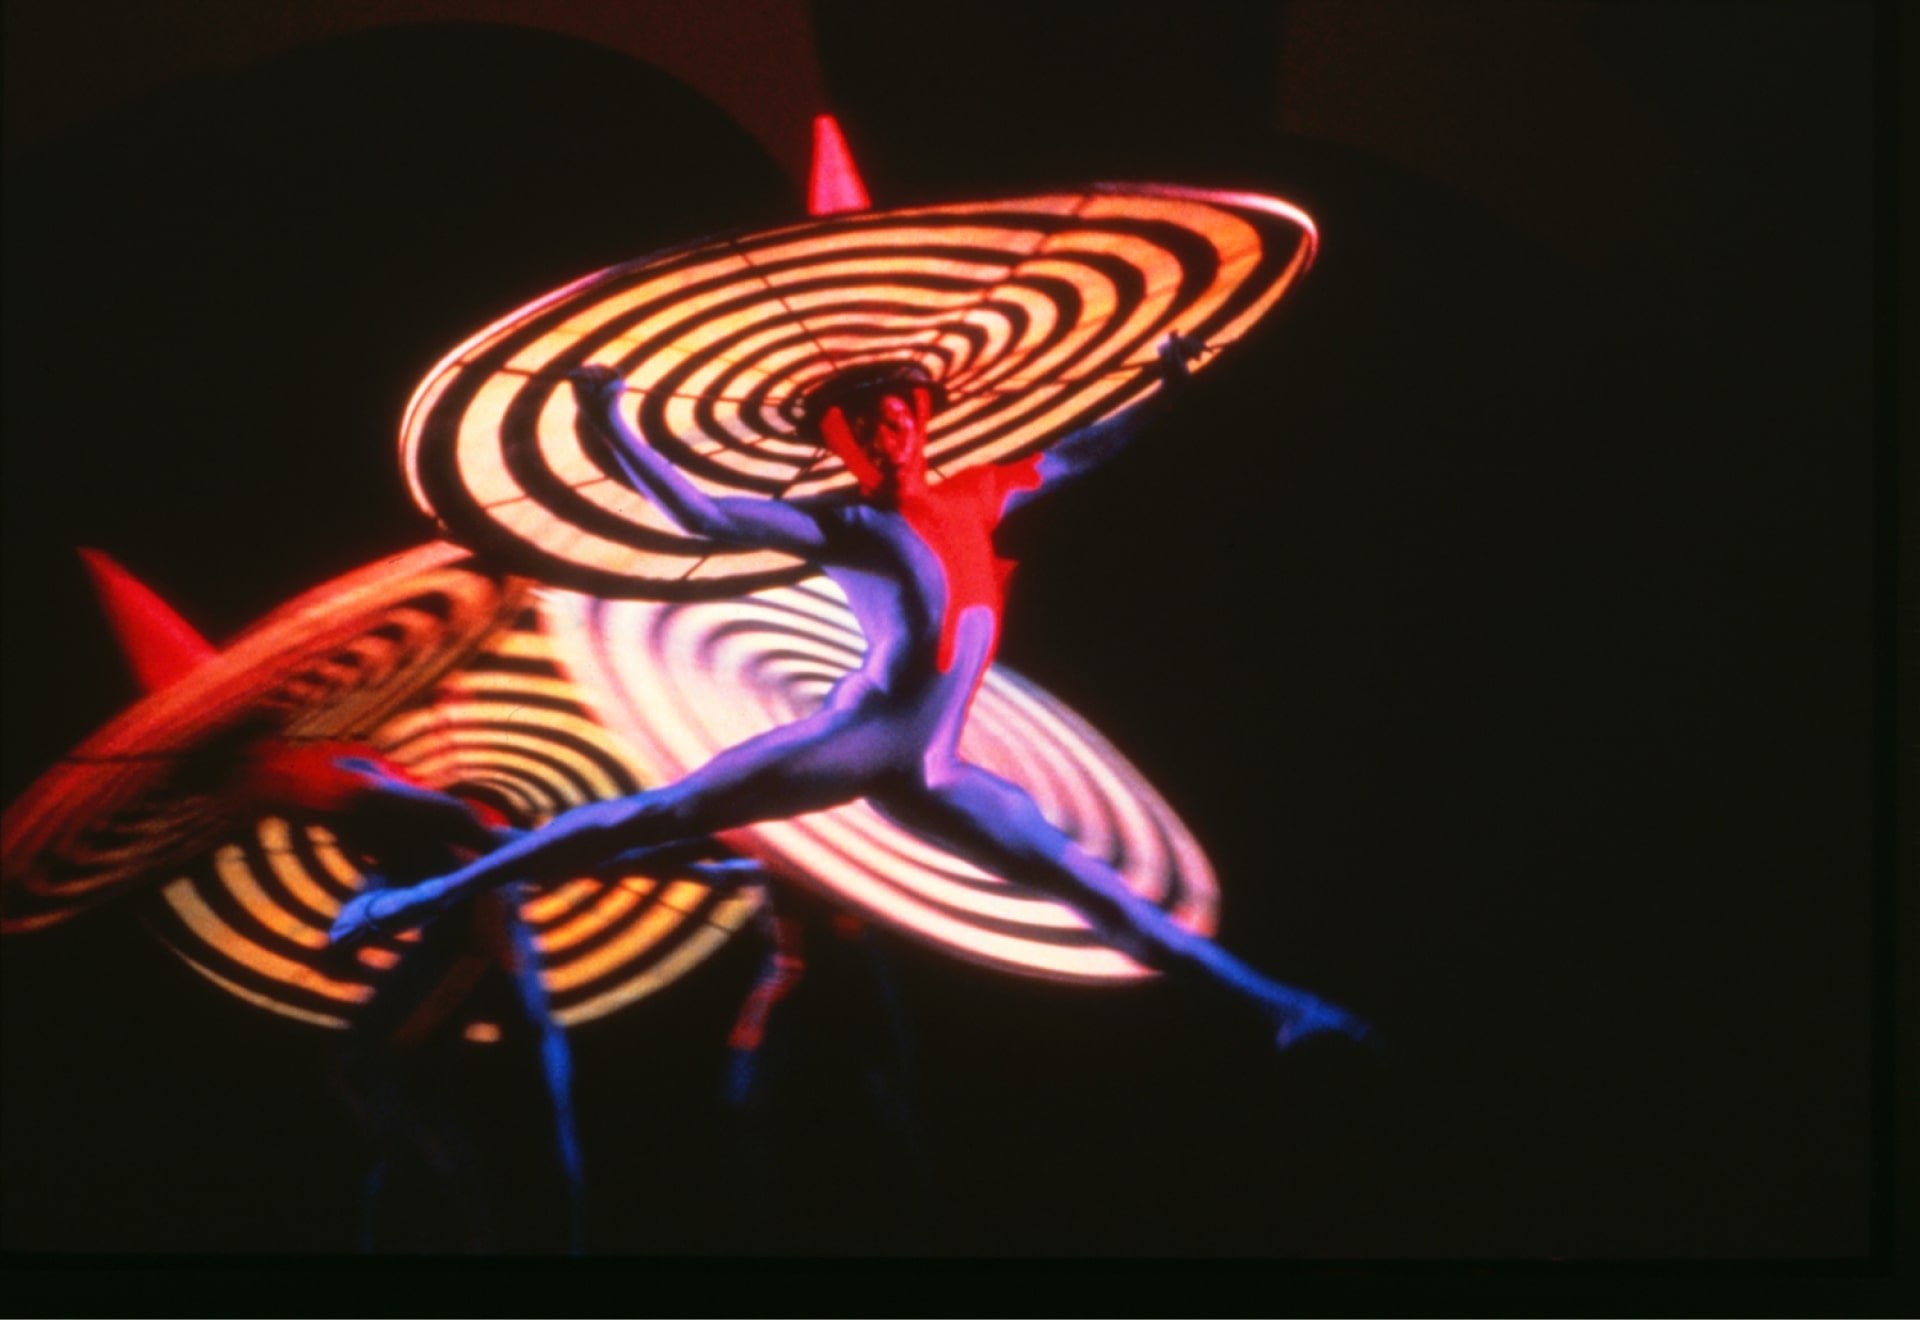 Four dancers in shiny leotards and spinning top sombreros leap against dark background.